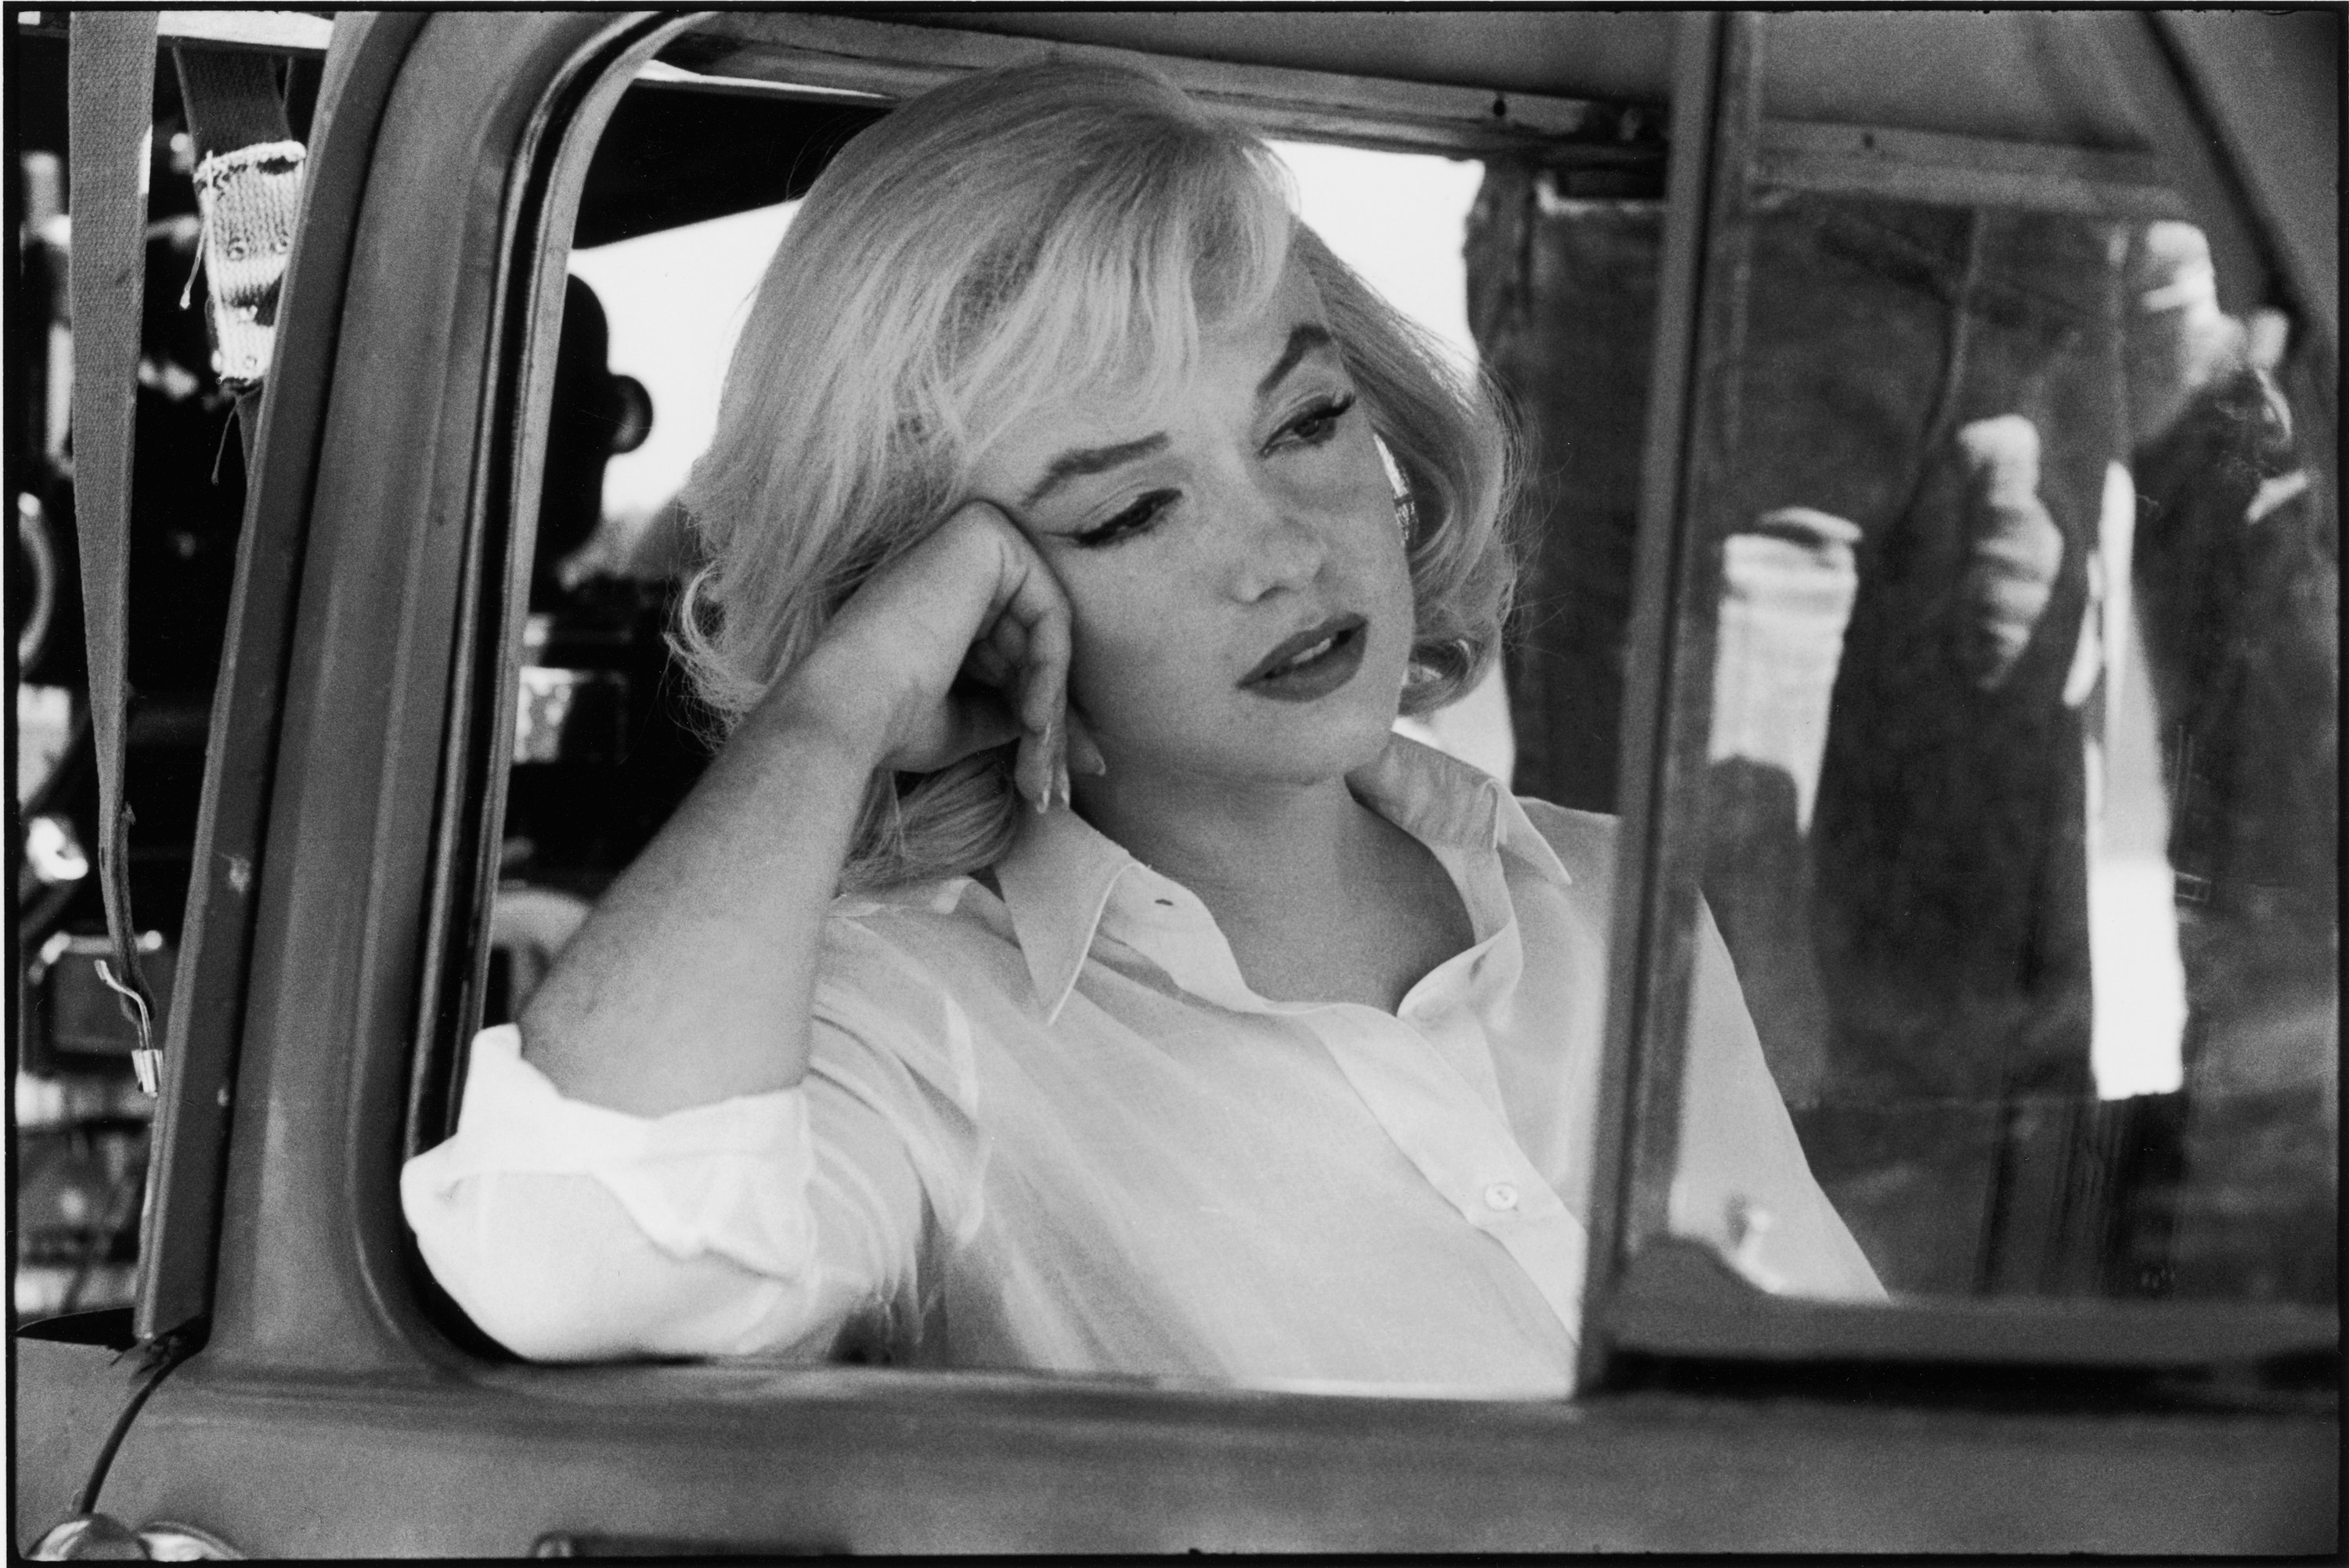 Marilyn Monroe in a car looking out the window